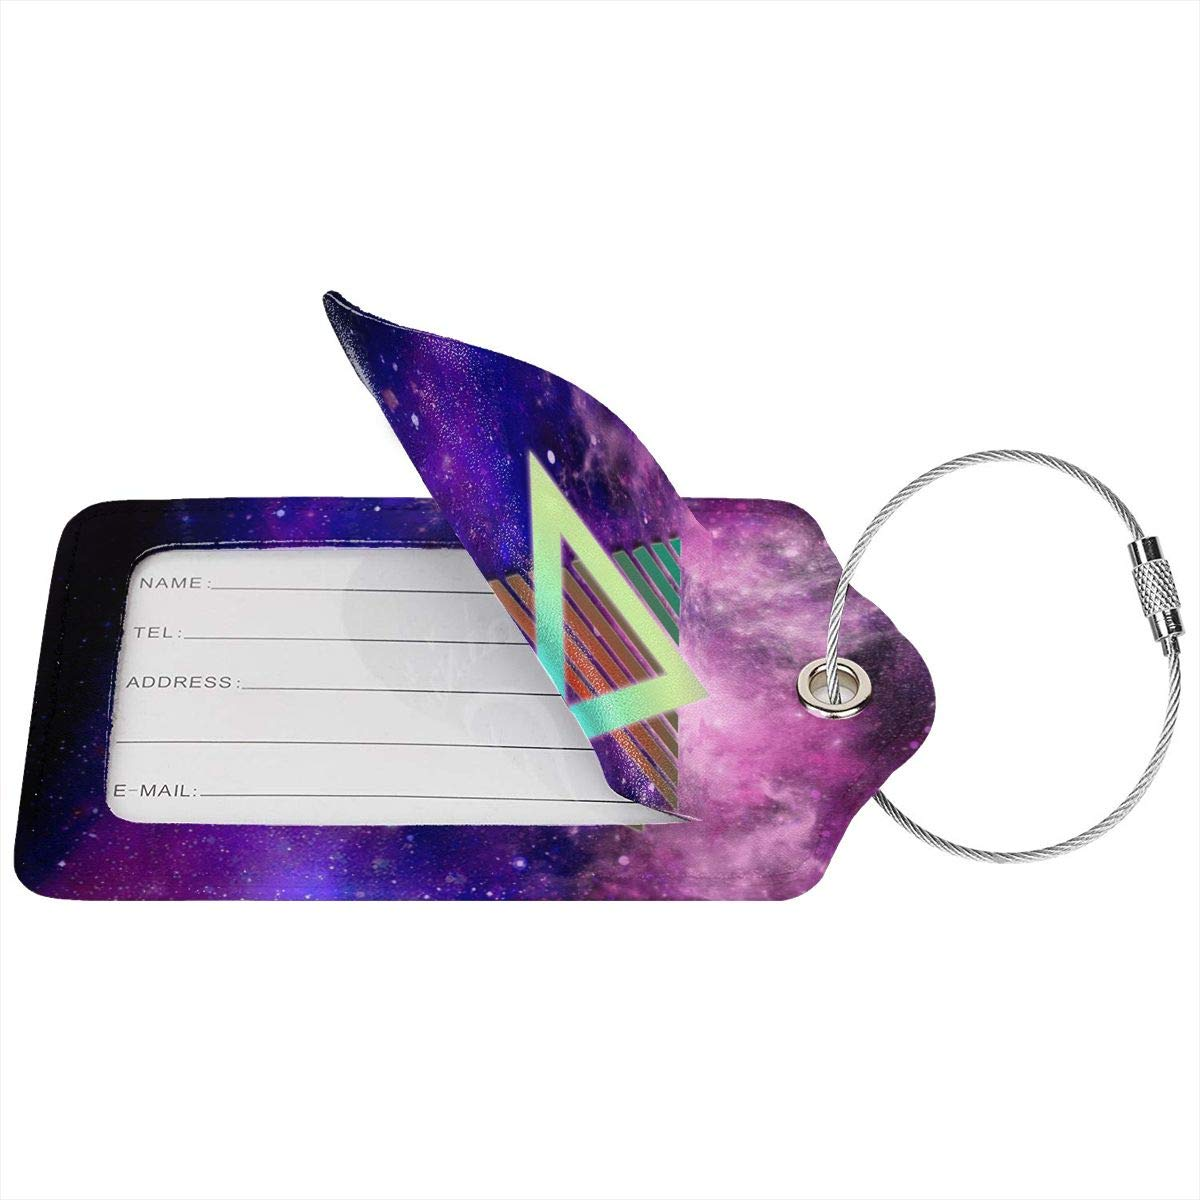 Leather Luggage Tag Geometric Triangle Space Neon Style Luggage Tags For Suitcase Travel Lover Gifts For Men Women 2 PCS